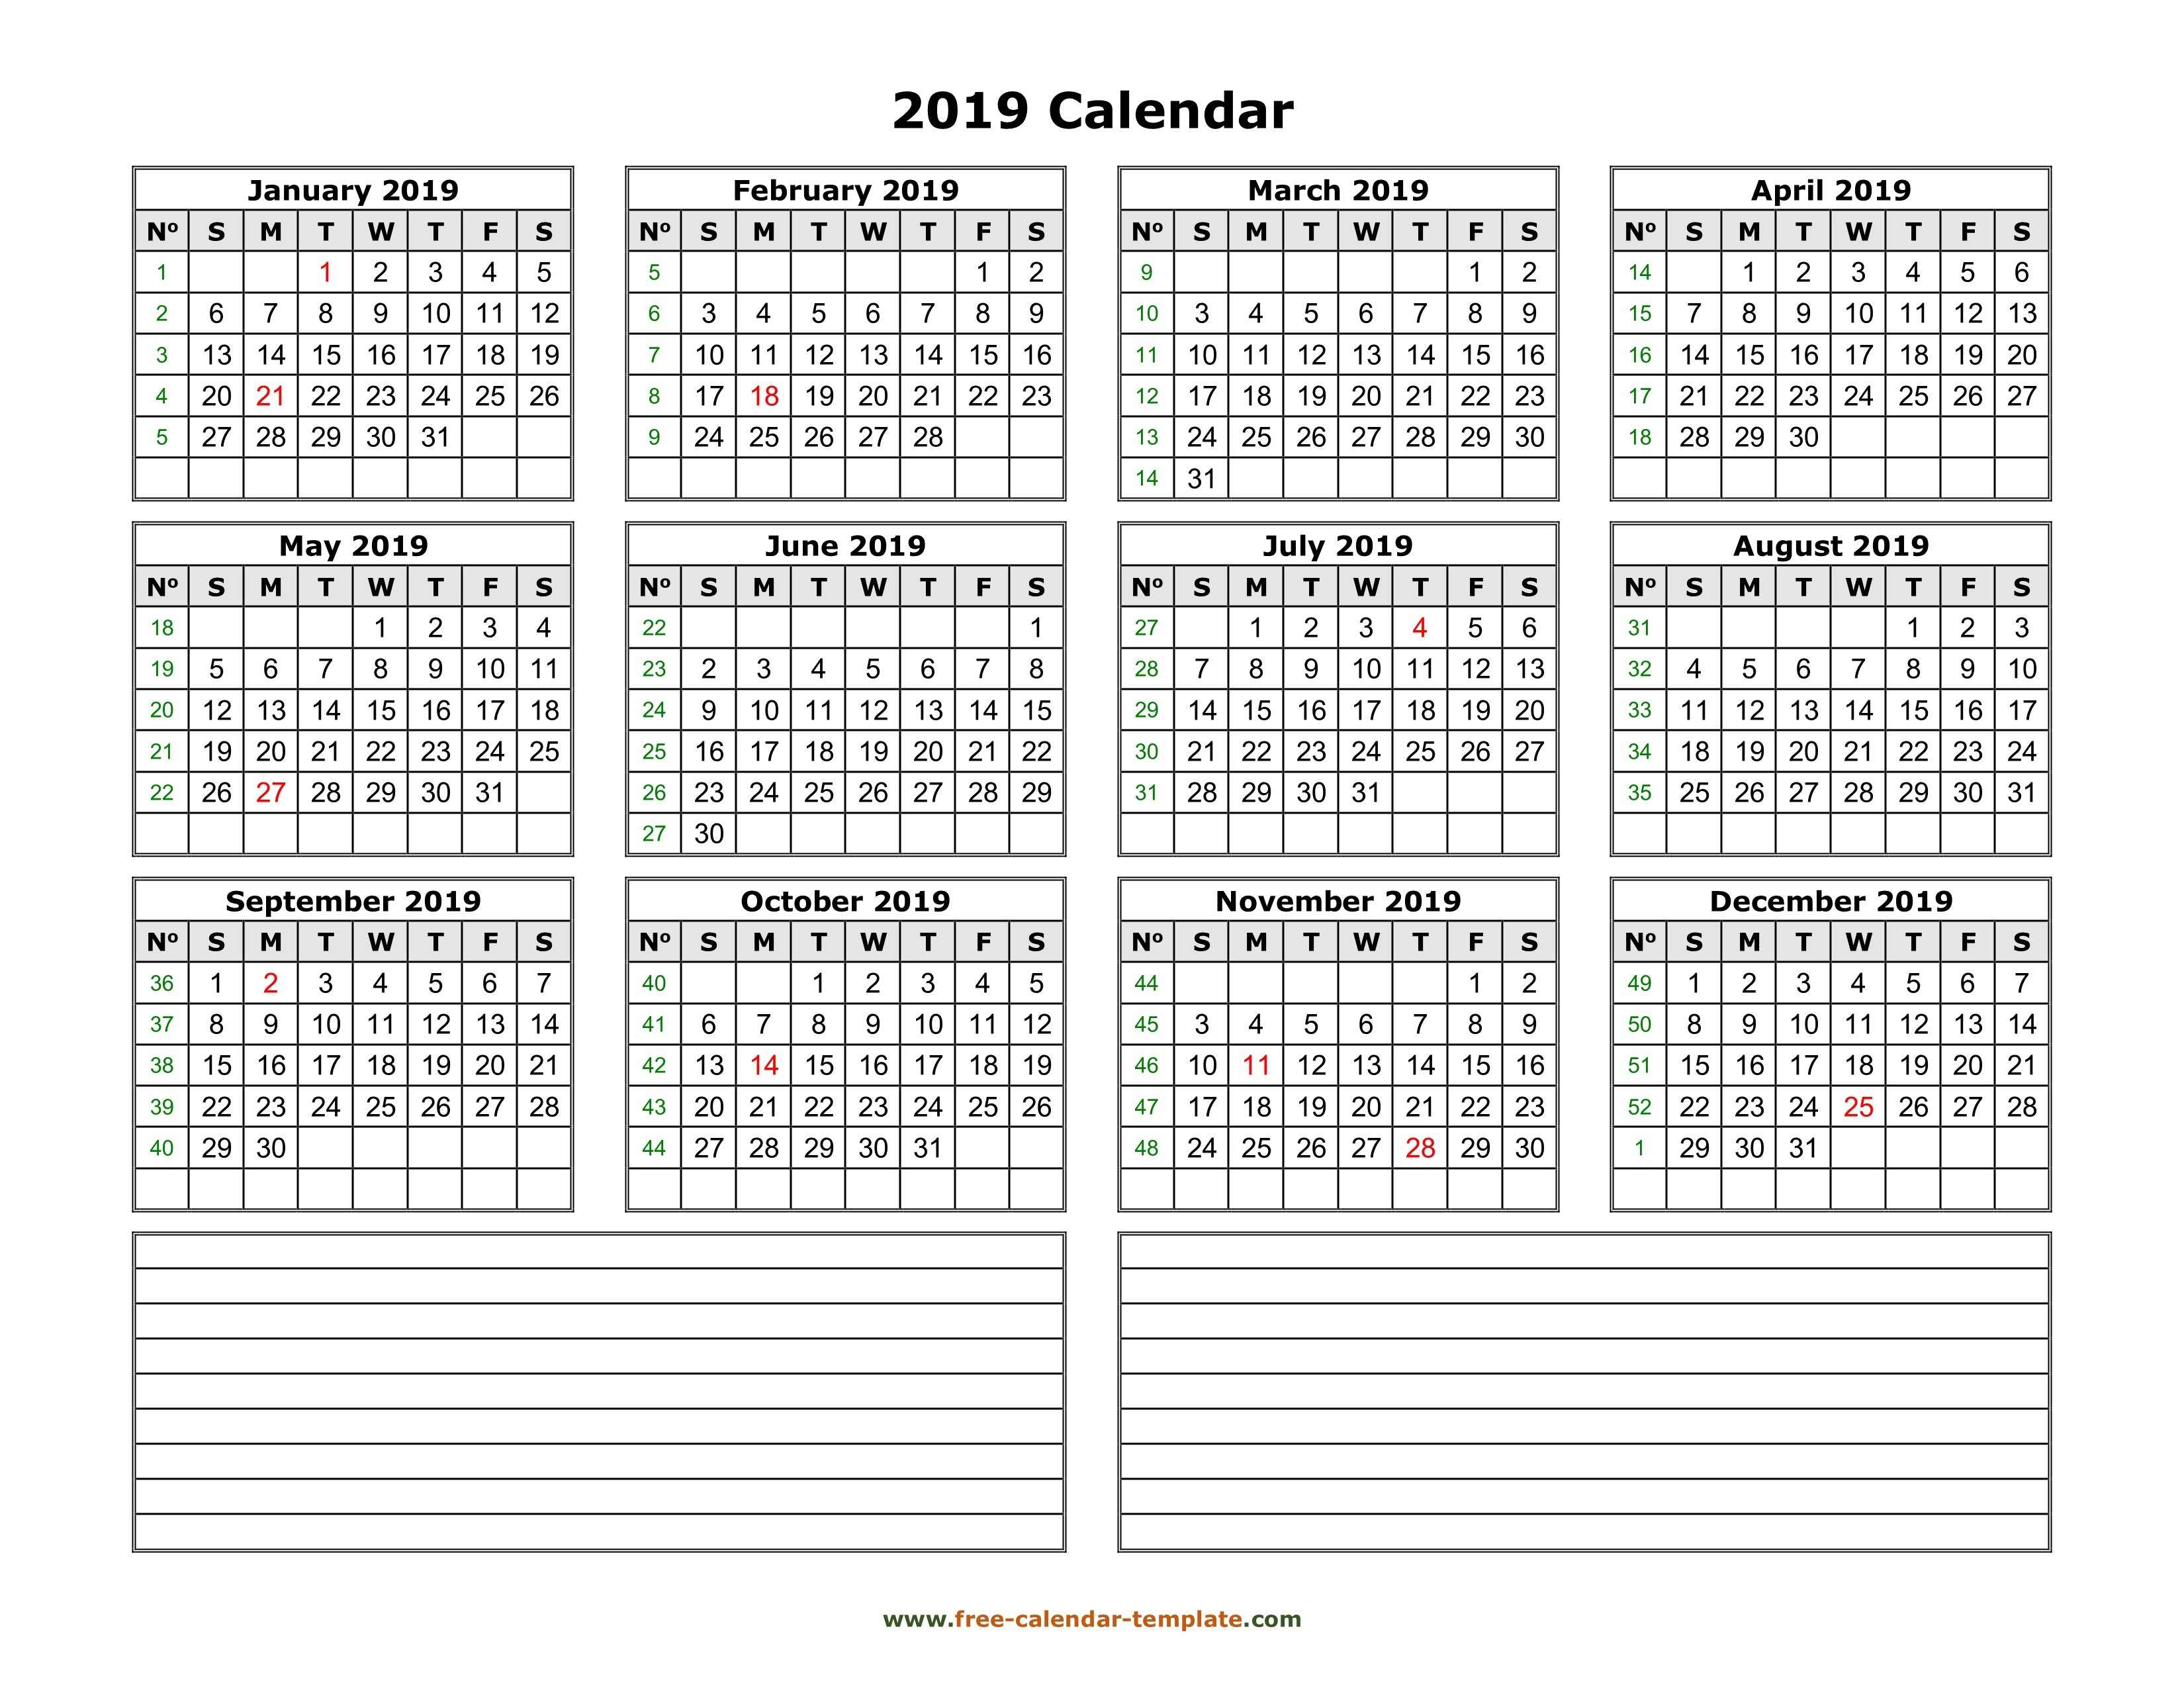 Yearly 2019 Calendar Printable With Space For Notes | Free Calendar Calendar 2019 View